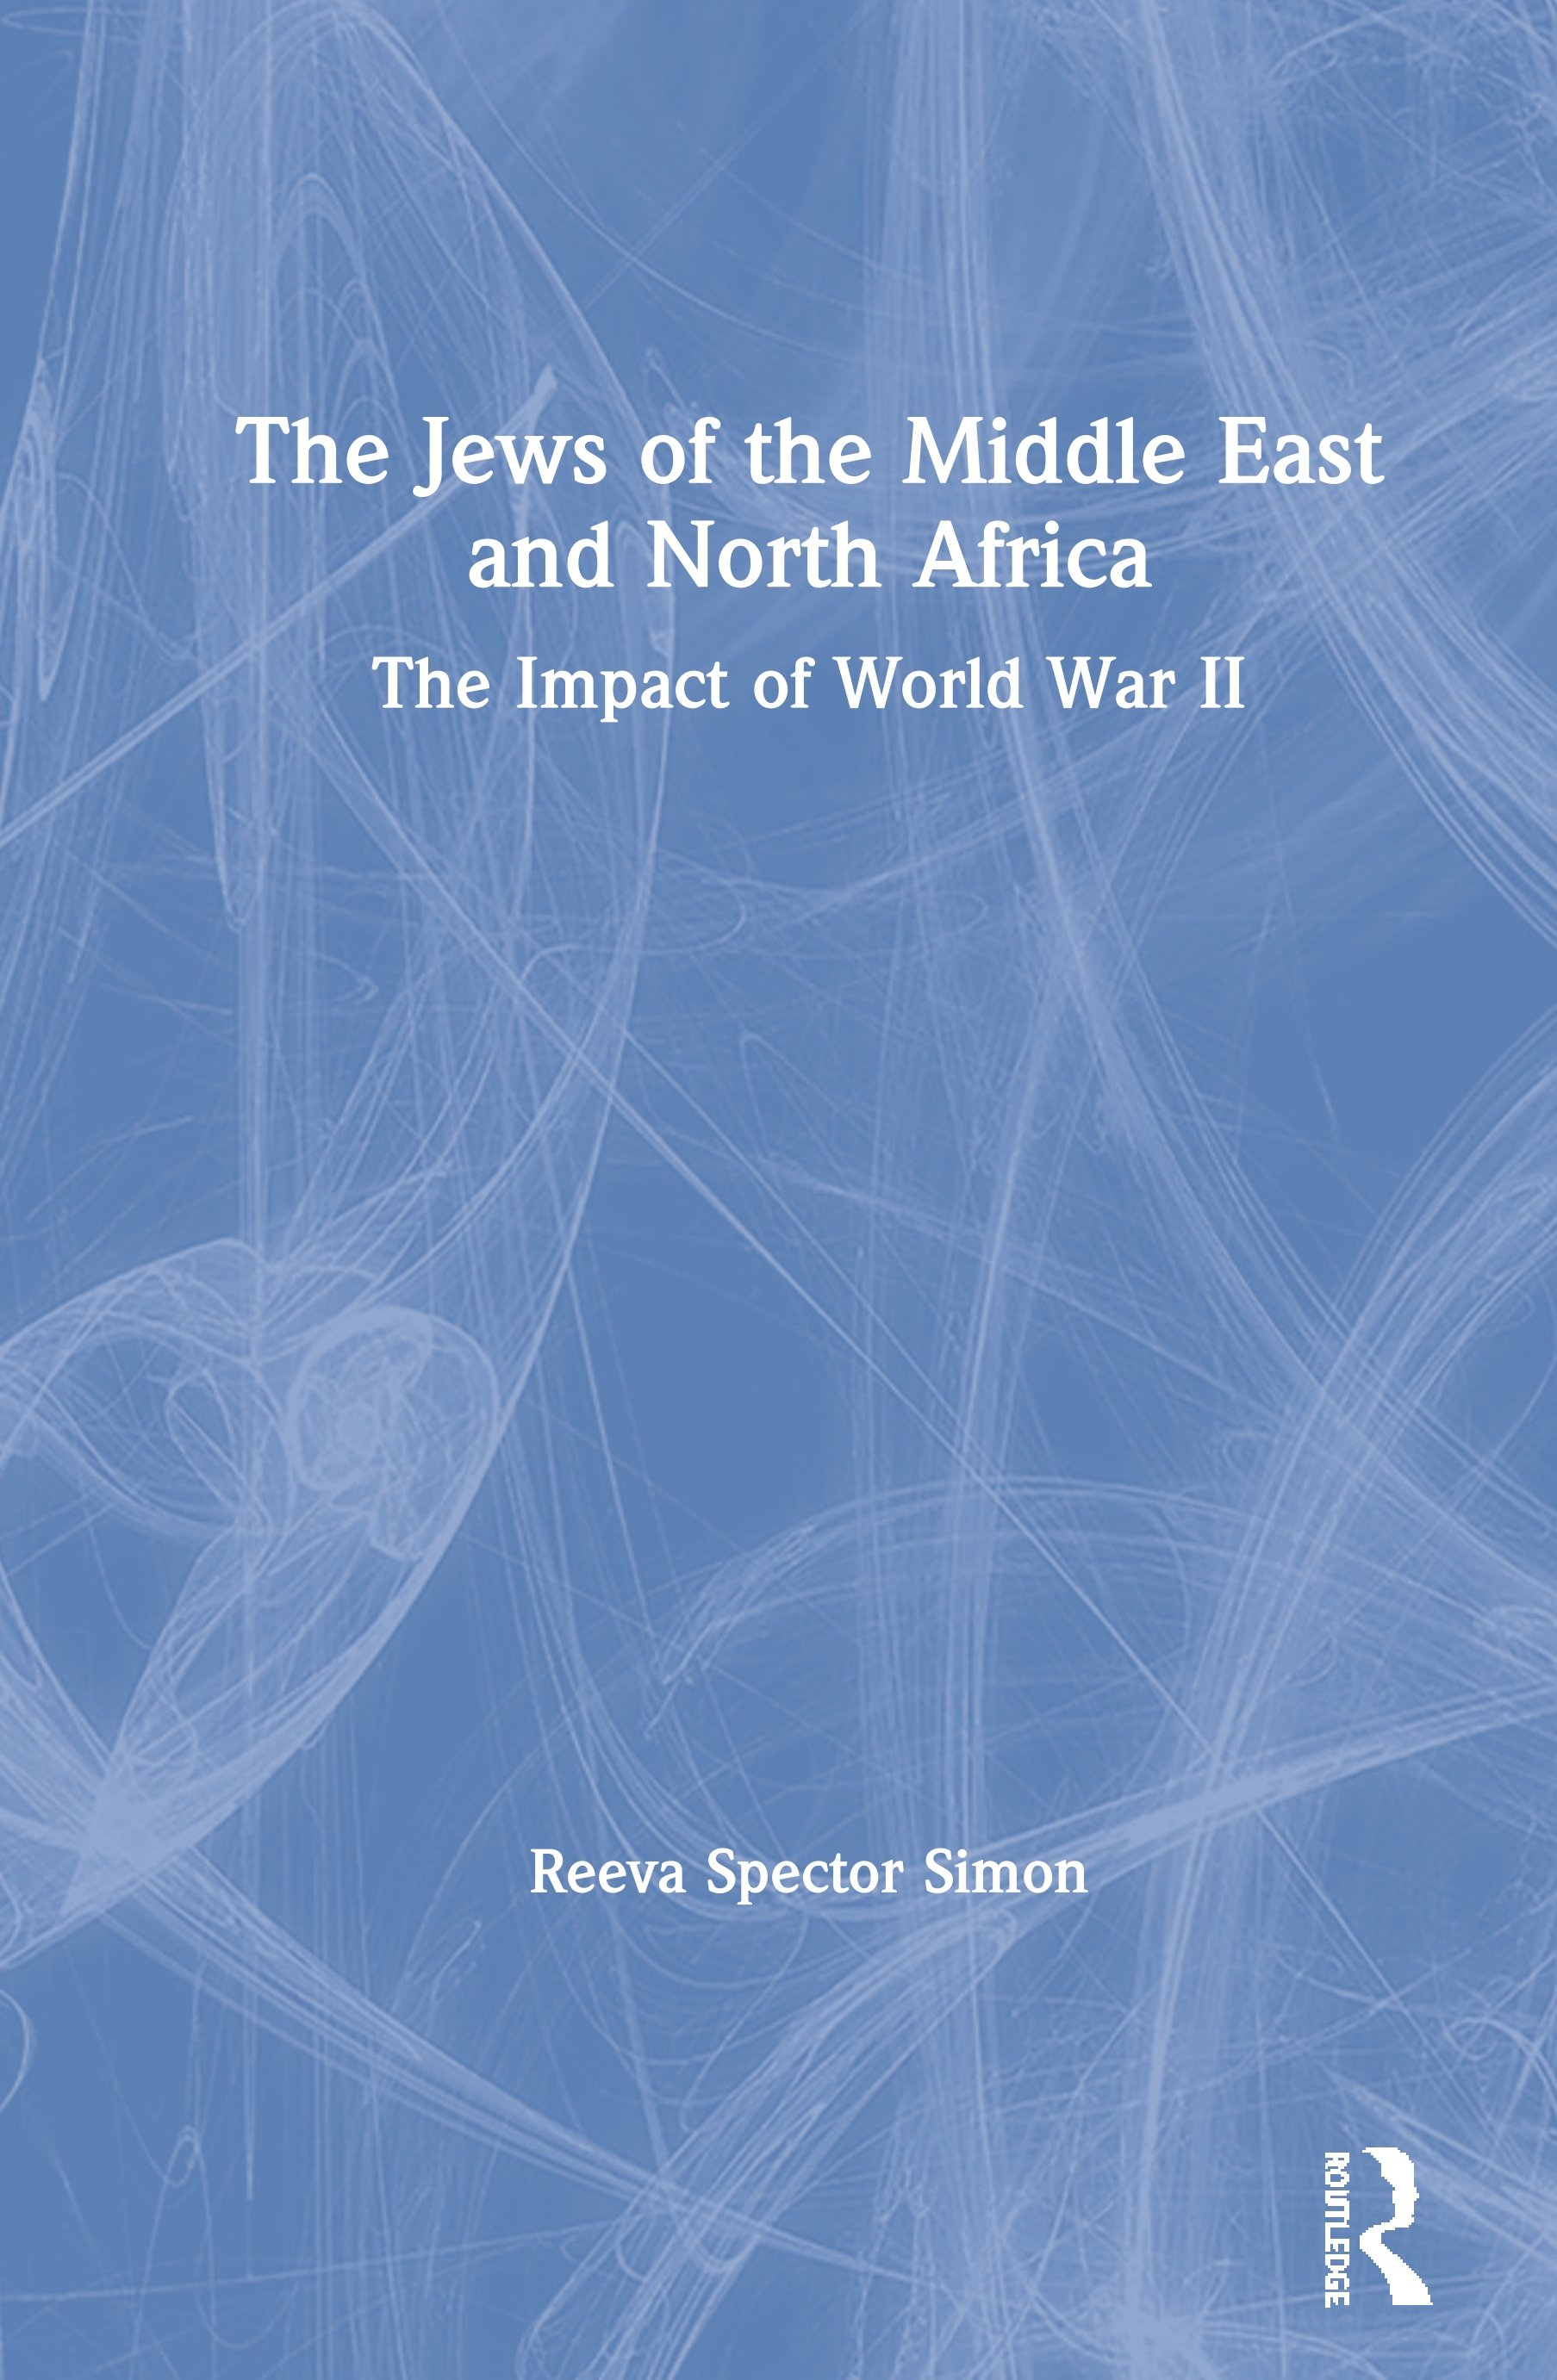 The Jews of the Middle East and North Africa: The Impact of World War II book cover